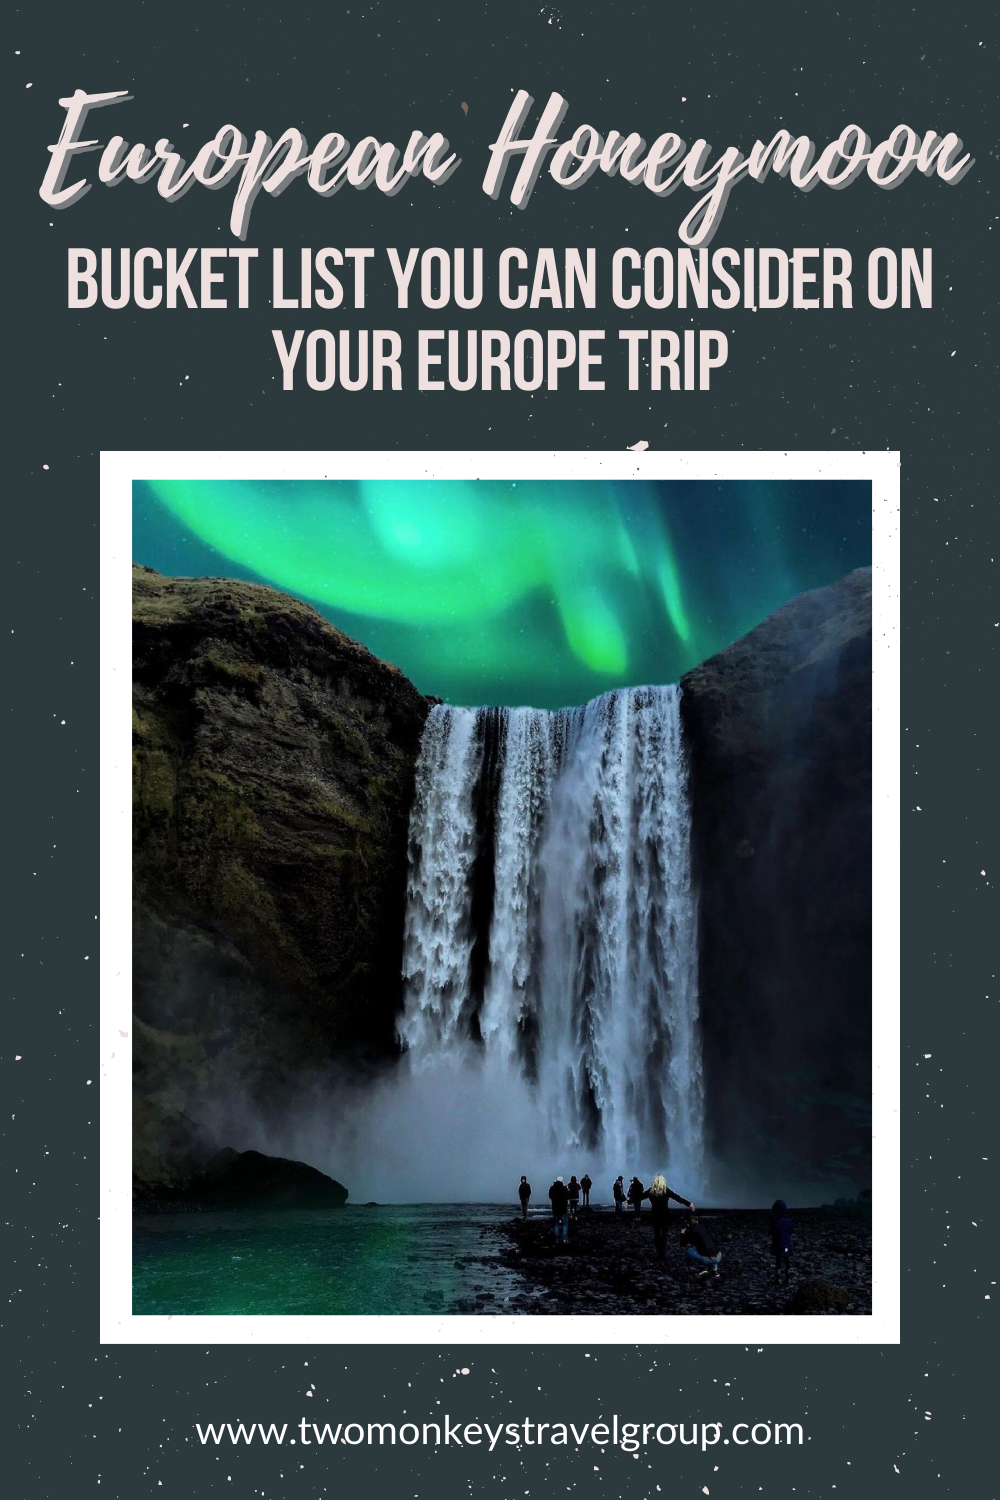 7 European Honeymoon Bucket List You Can Consider On Your Europe Trip